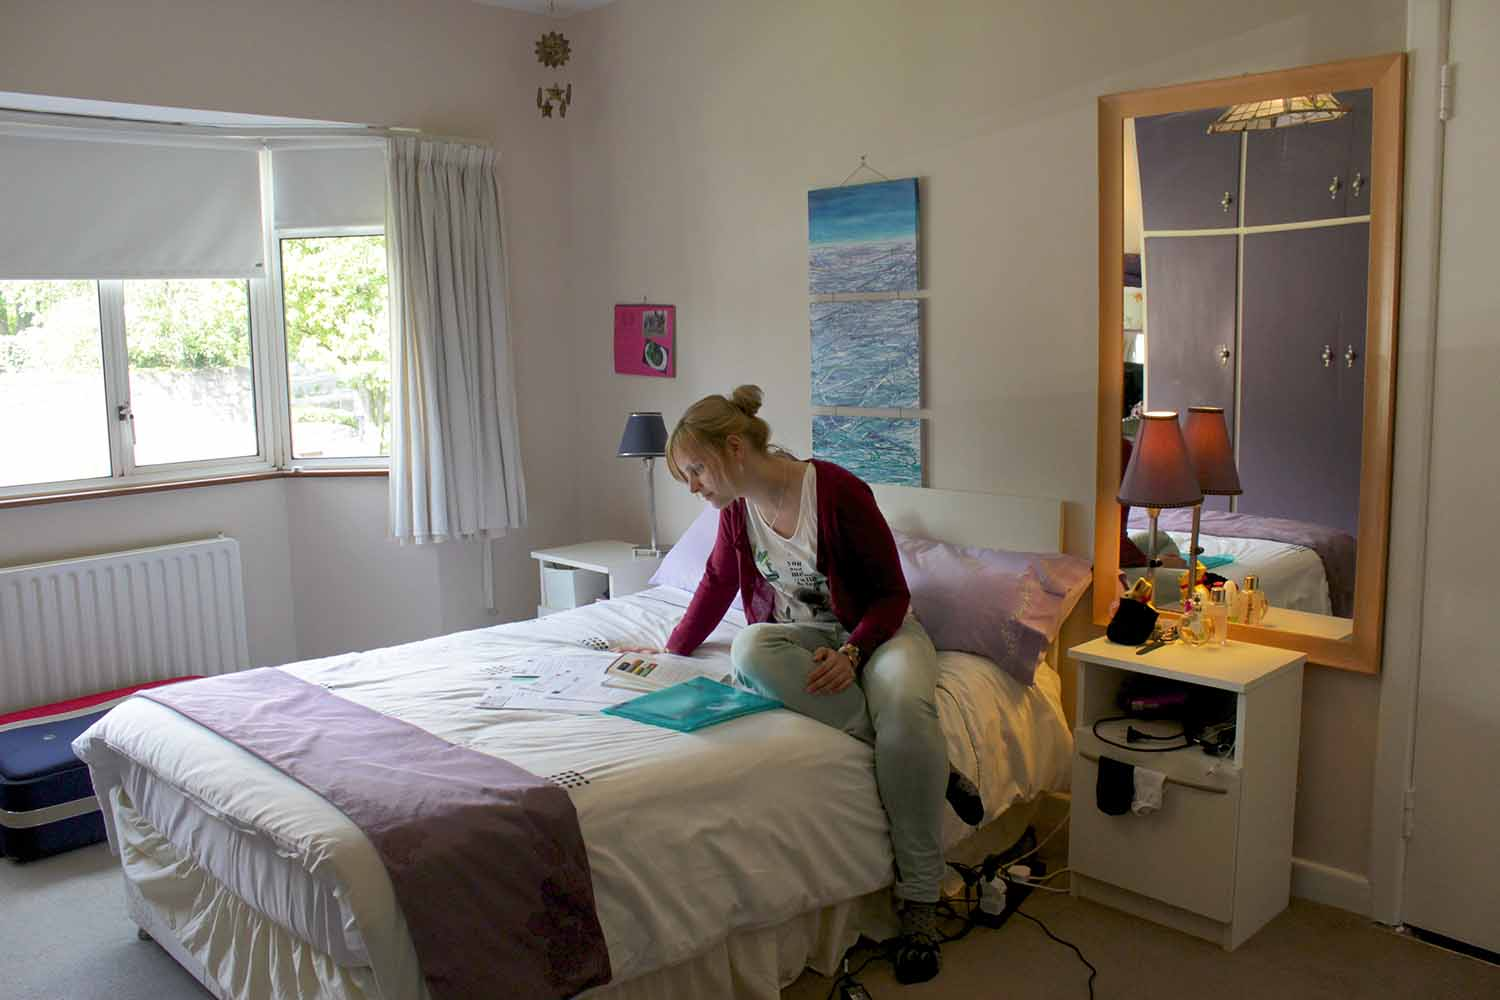 Dublin_Acc_Homestay_Bedroom_Student_04